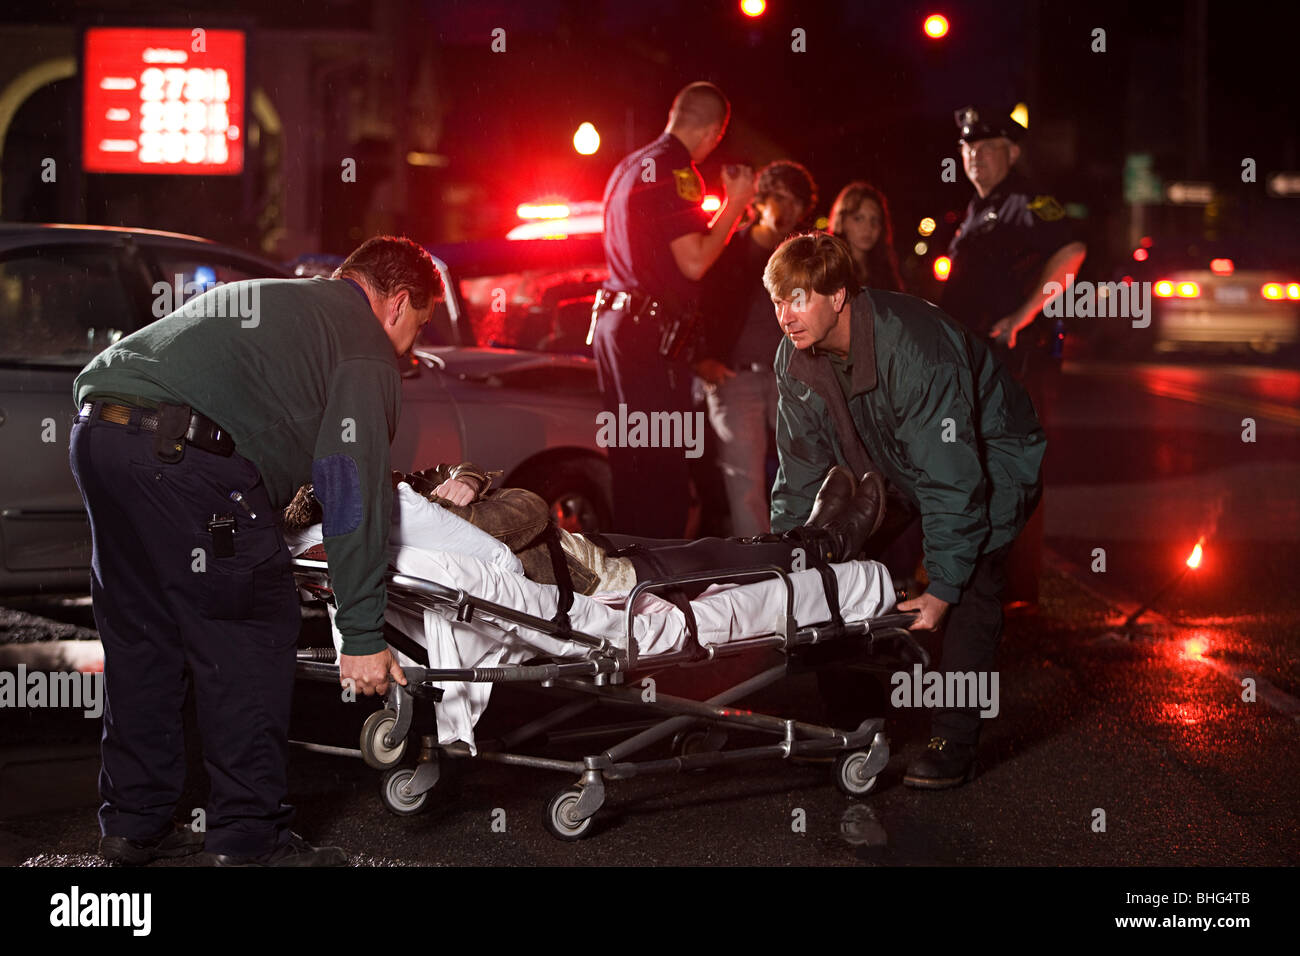 Emergency services at scene of accident - Stock Image